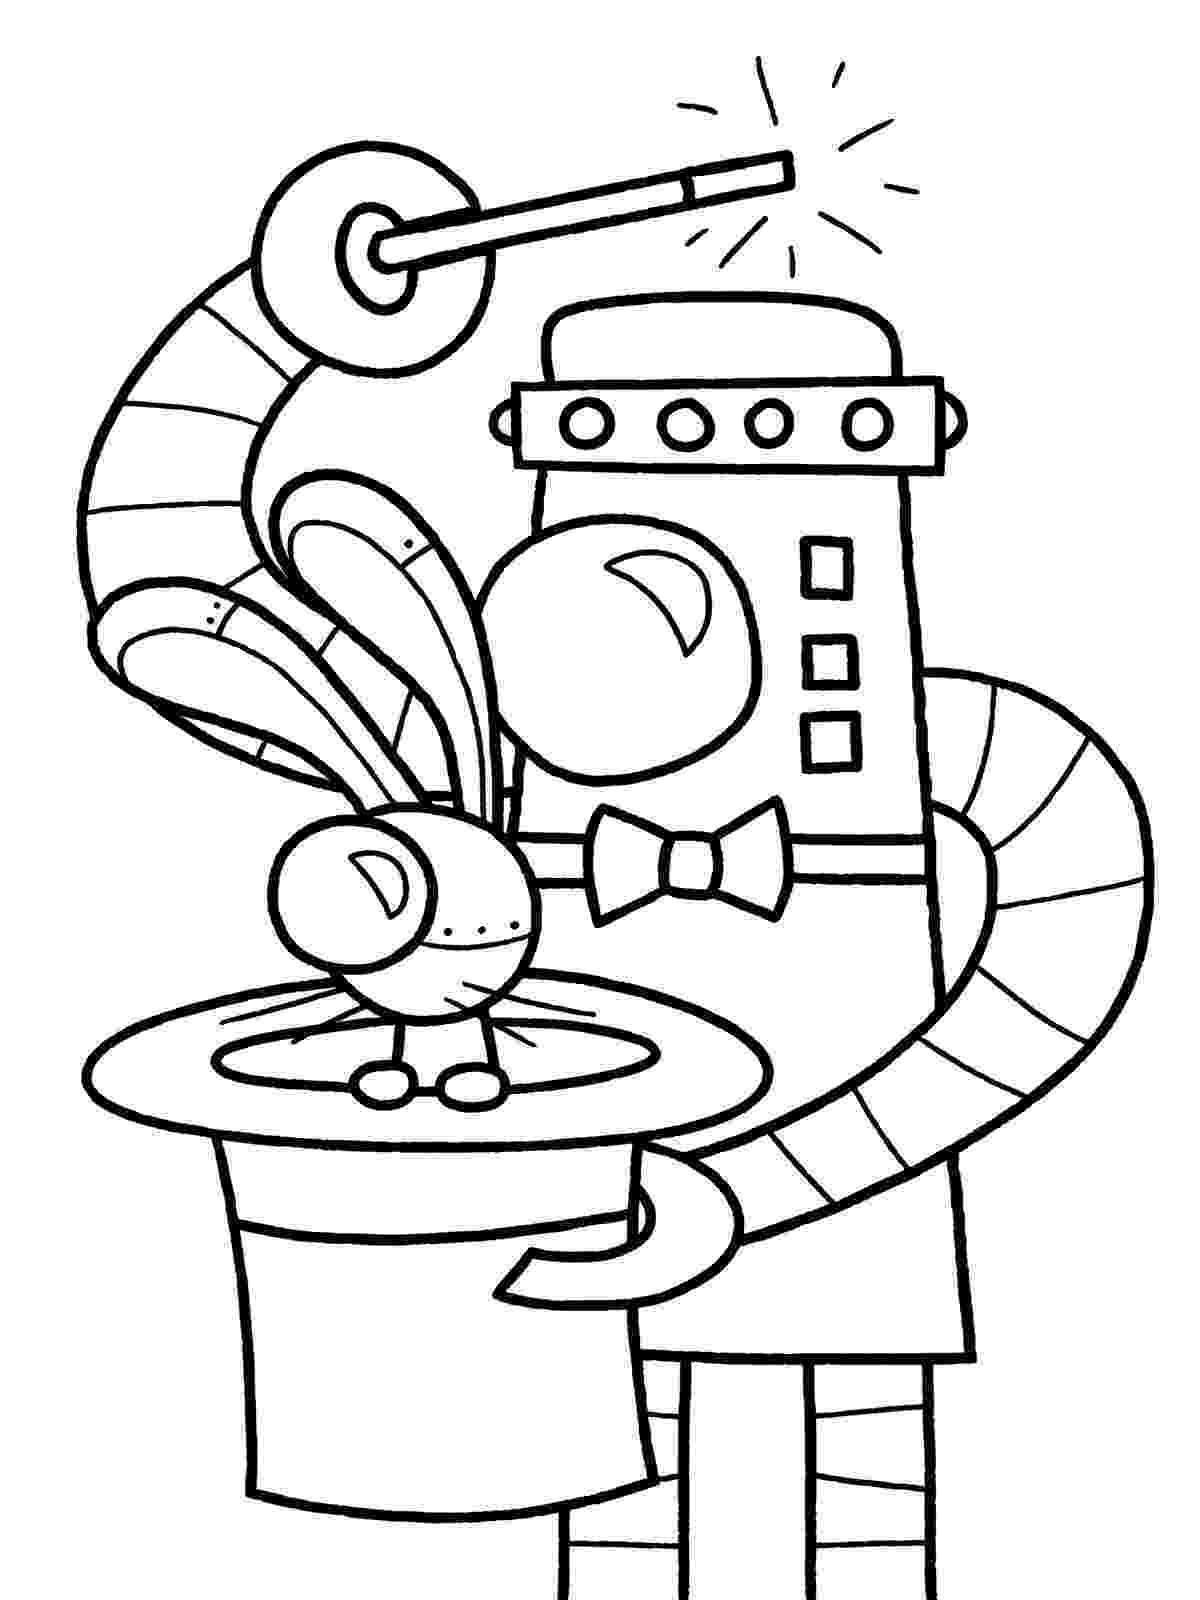 robot coloring sheets free printable robot coloring pages for kids cool2bkids coloring robot sheets